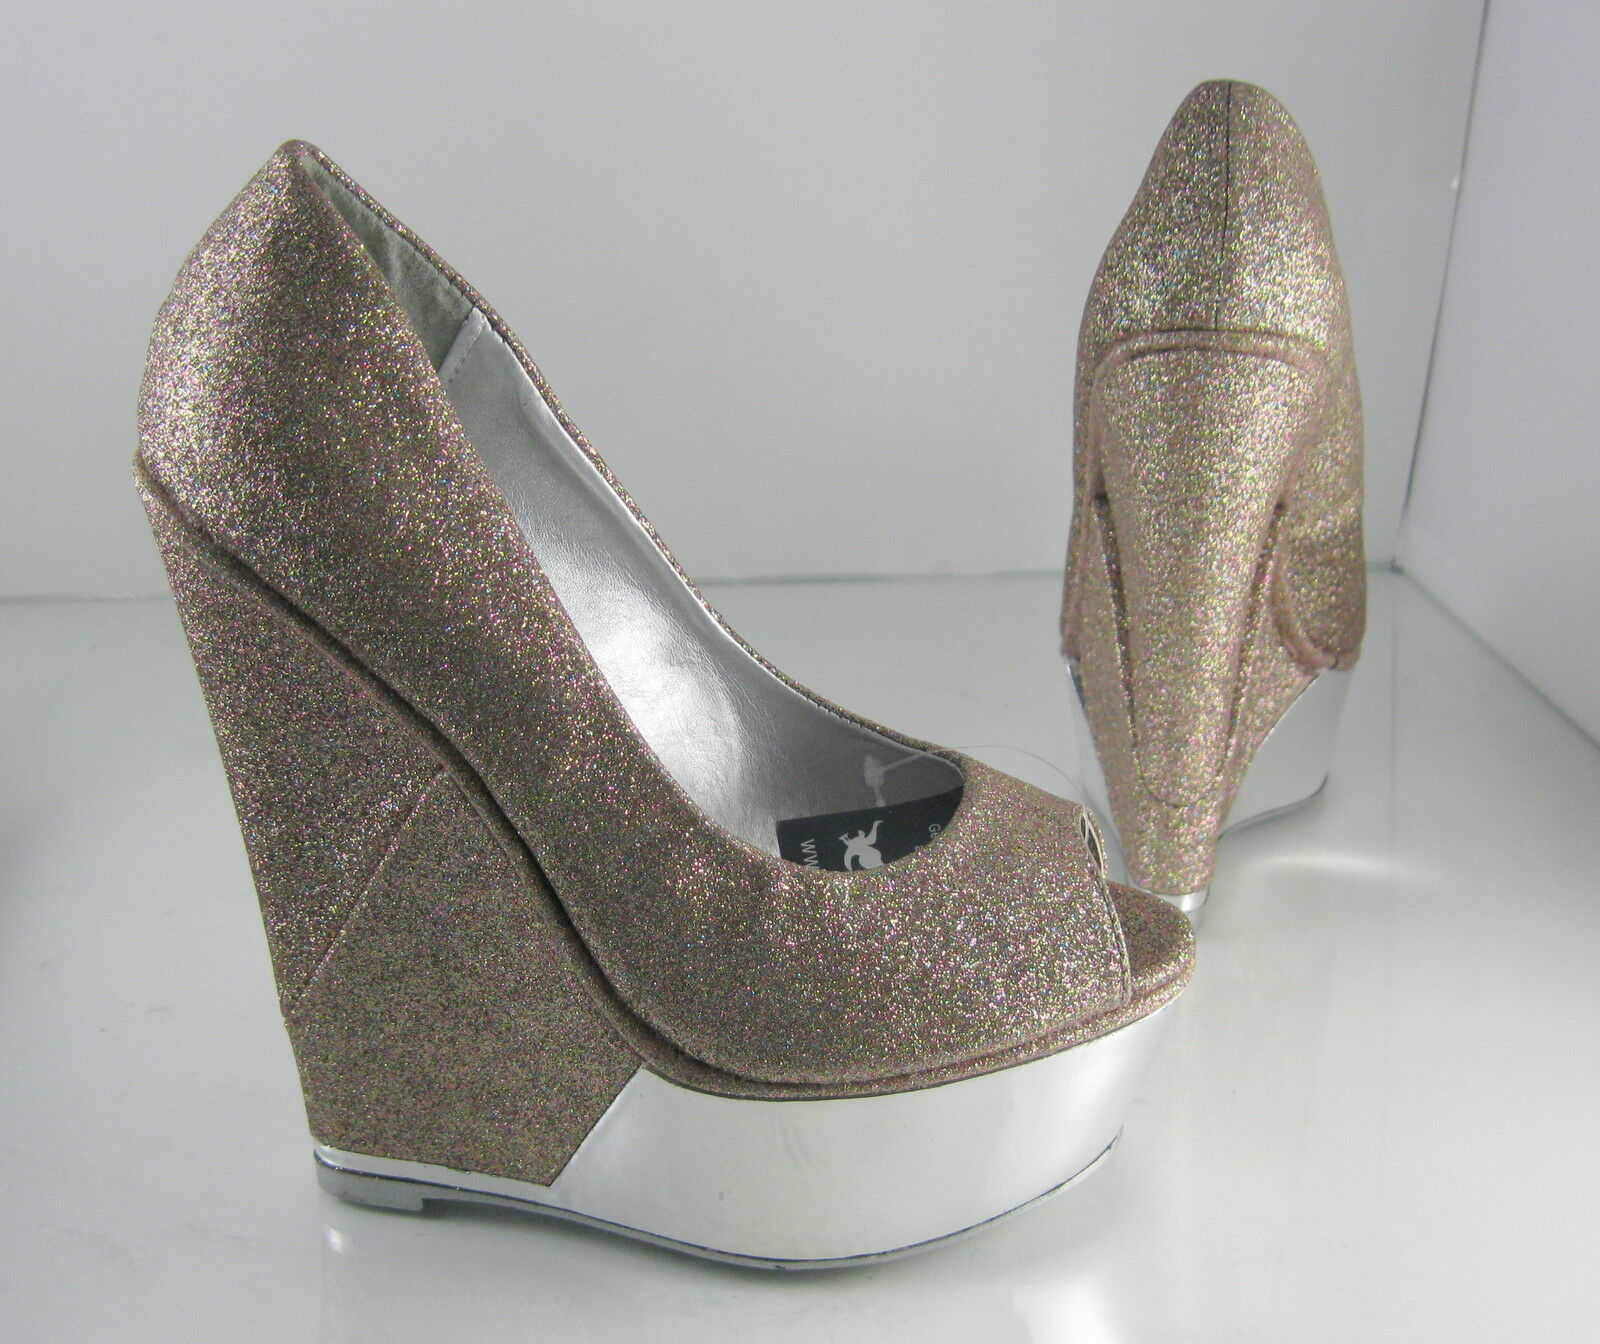 "Glitter 6"" High Wedge Heel 2"" Platform Open Toe Sexy Shoes Size 8.5"